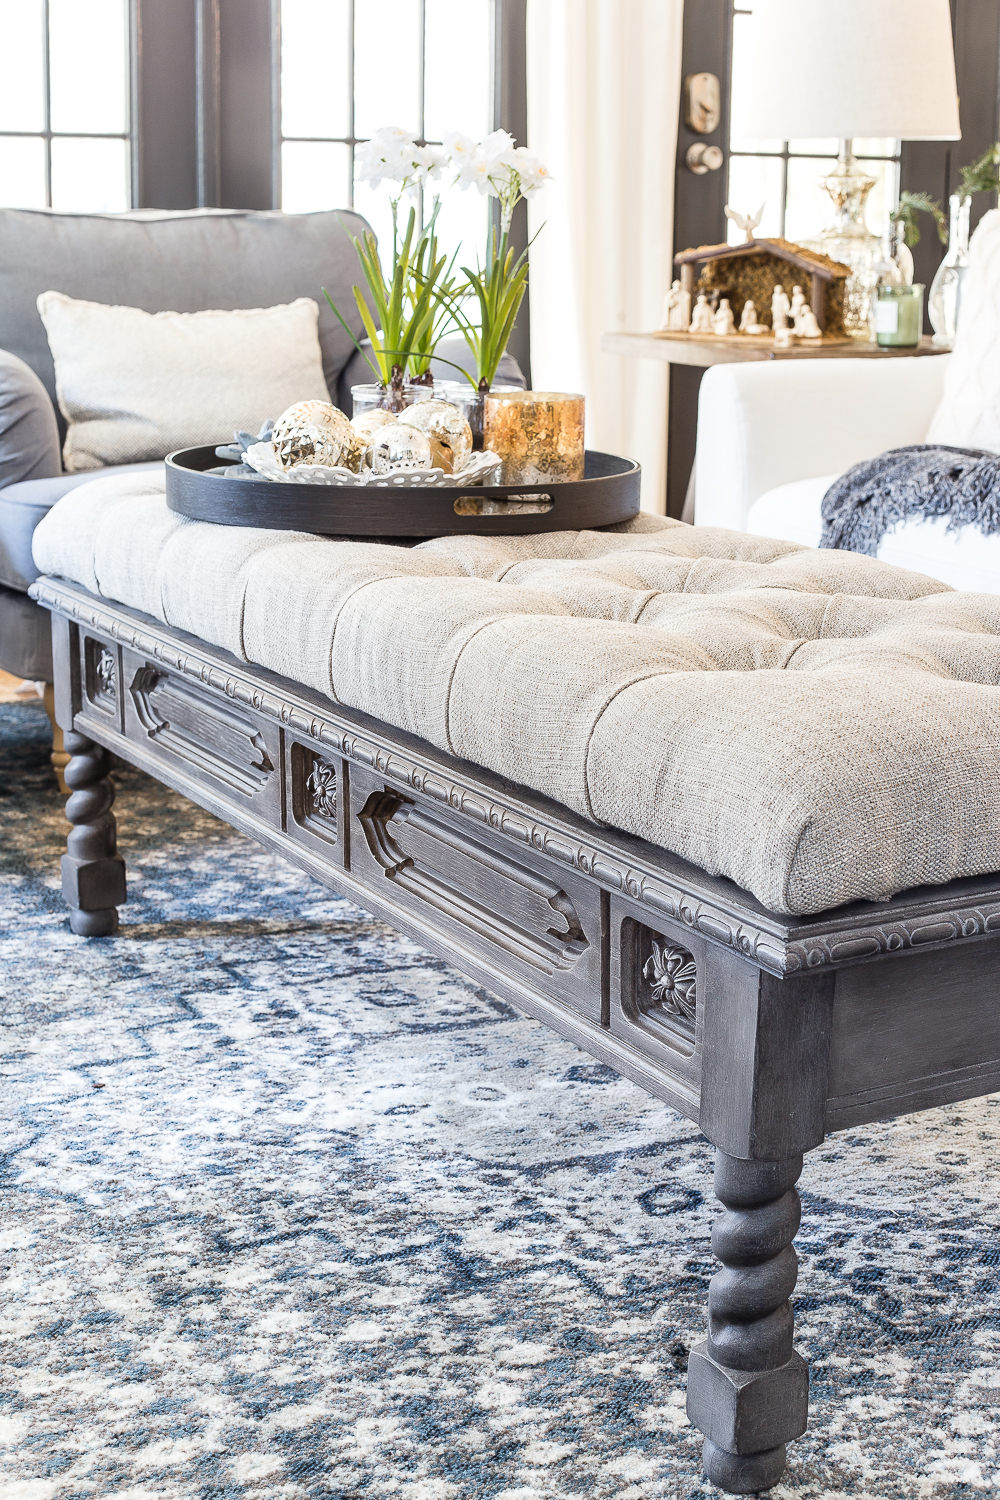 Diy Ottoman Bench From A Repurposed Coffee Table Blesser House with regard to sizing 1000 X 1500